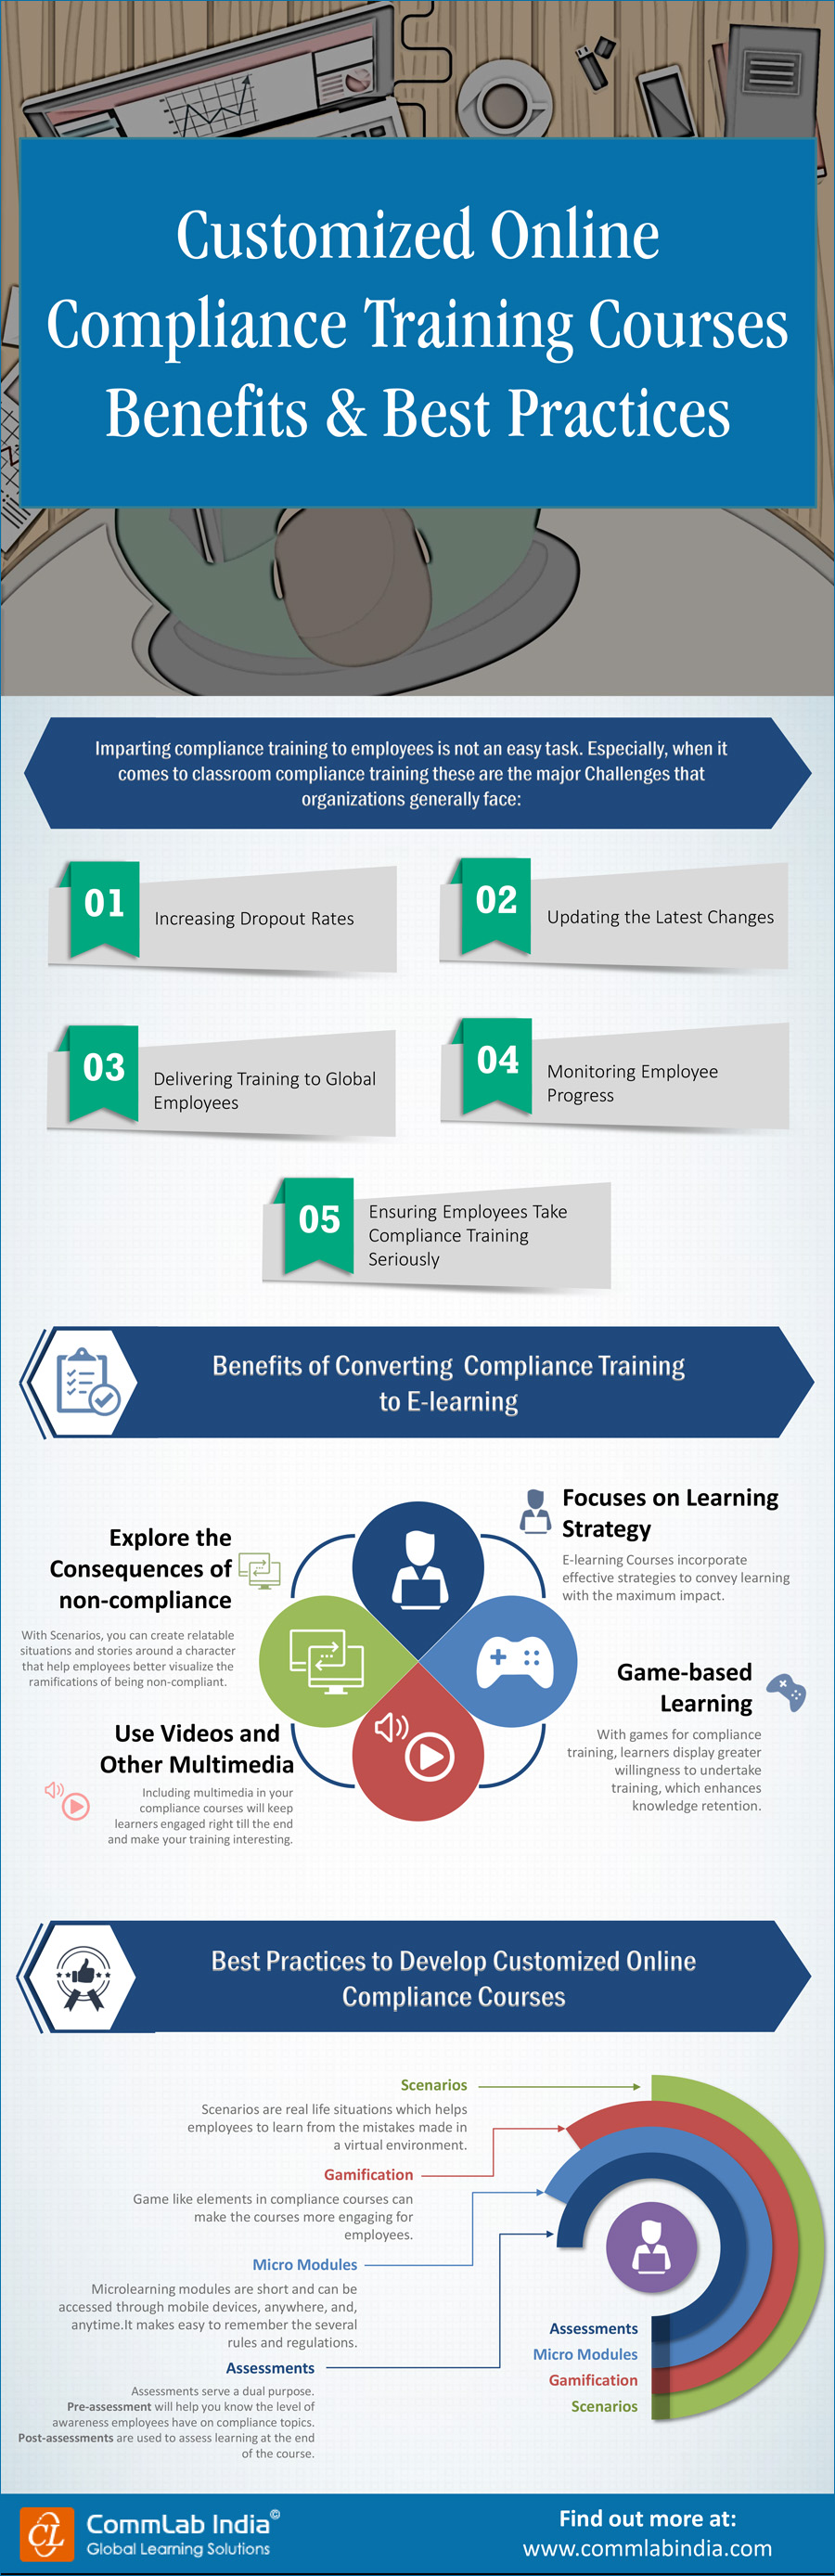 Customized Online Compliance Training Courses Benefits and Best Practices [Infographic]